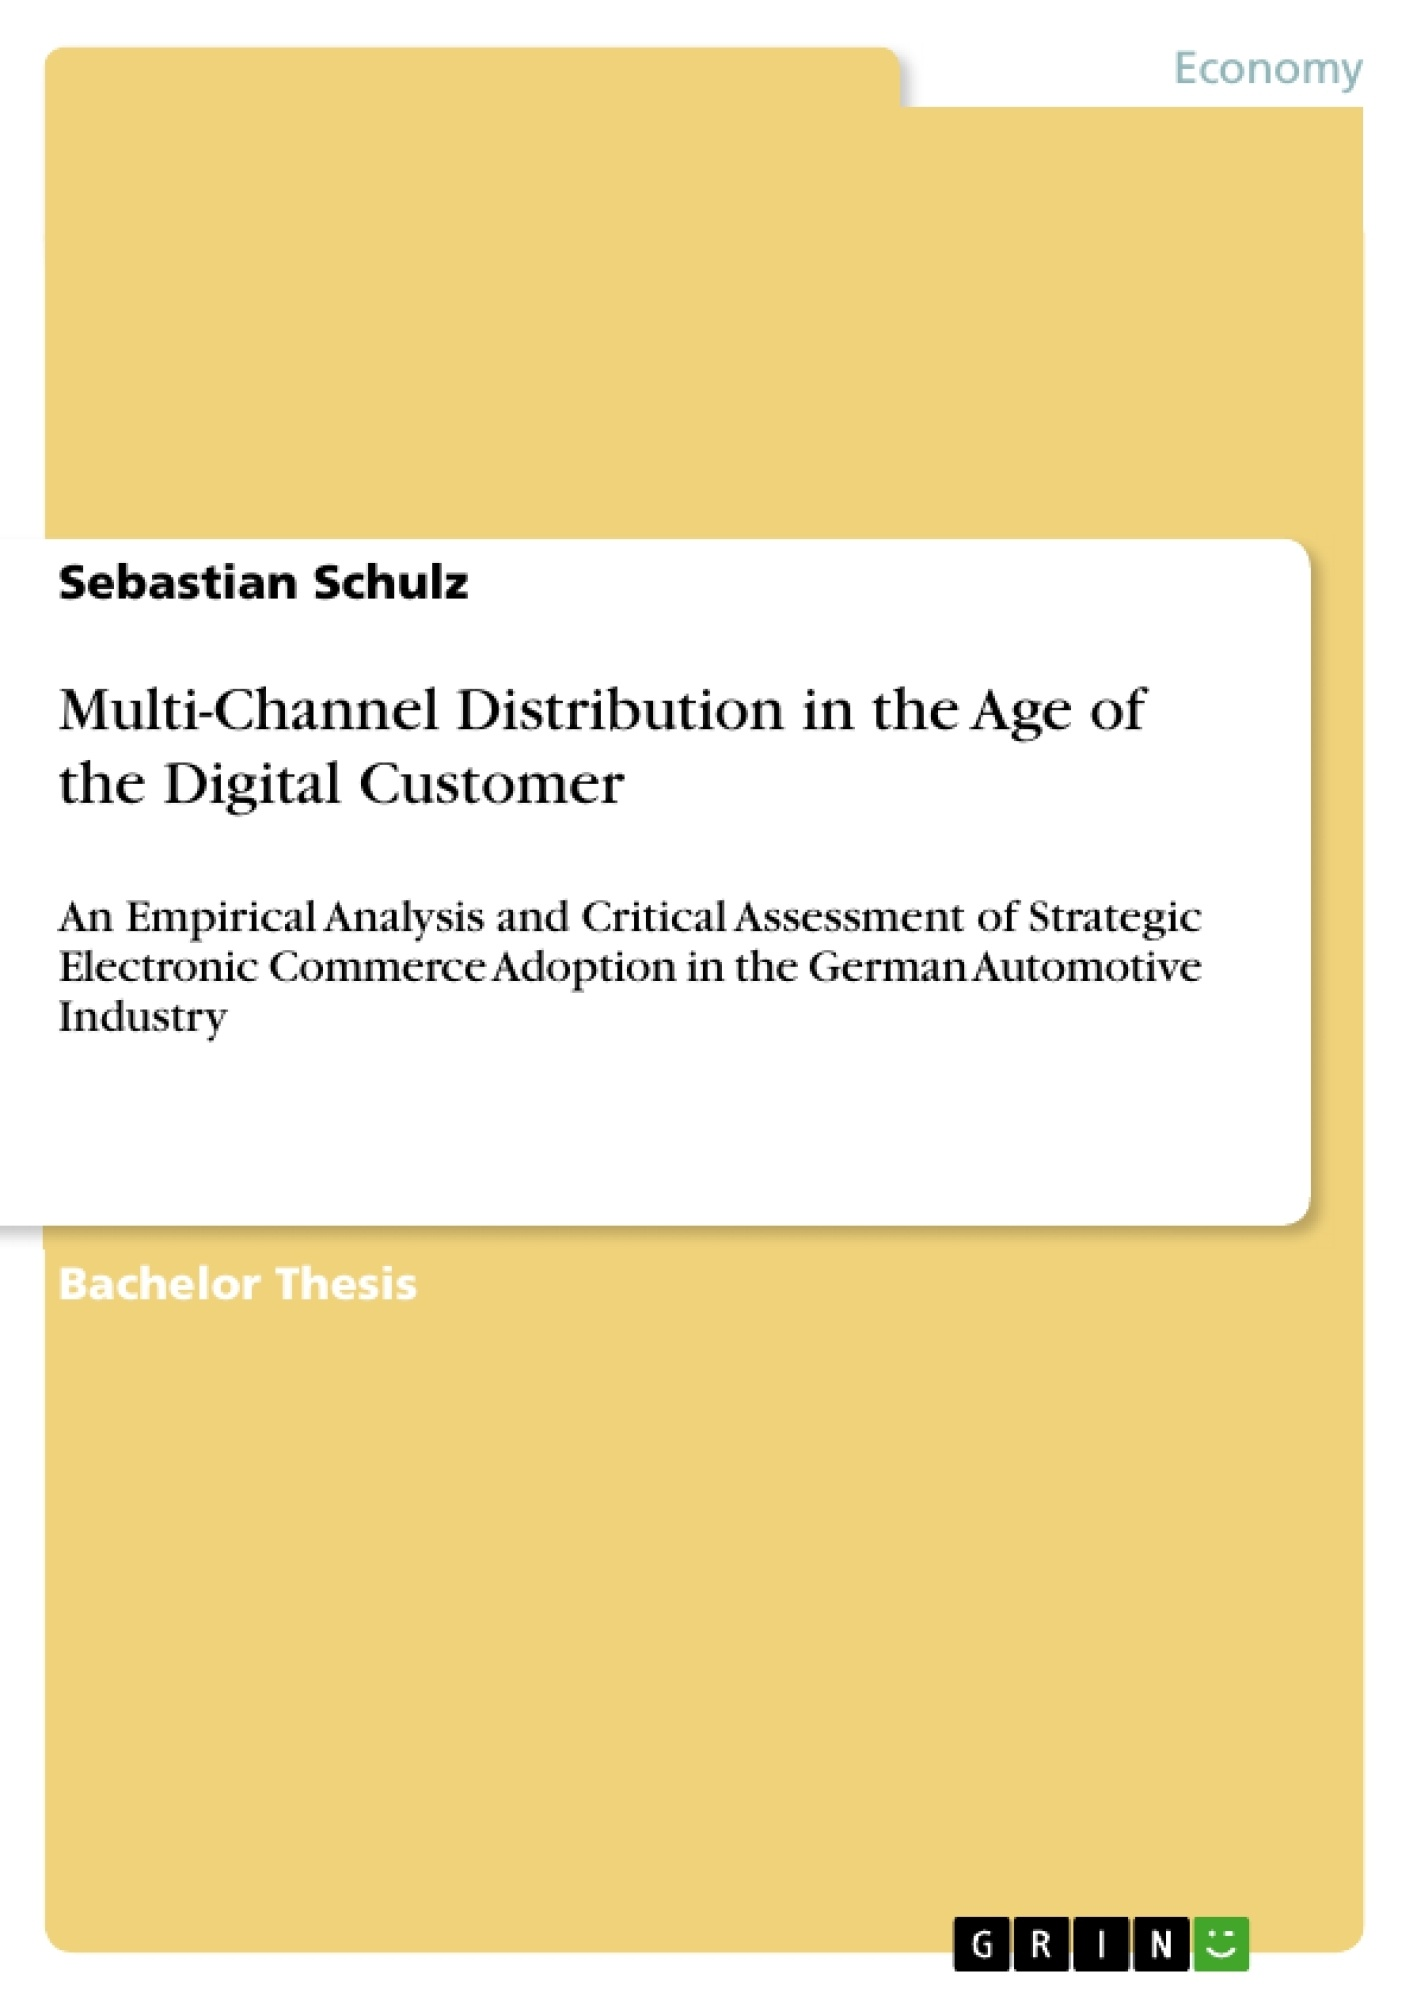 Title: Multi-Channel Distribution in the Age of the Digital Customer